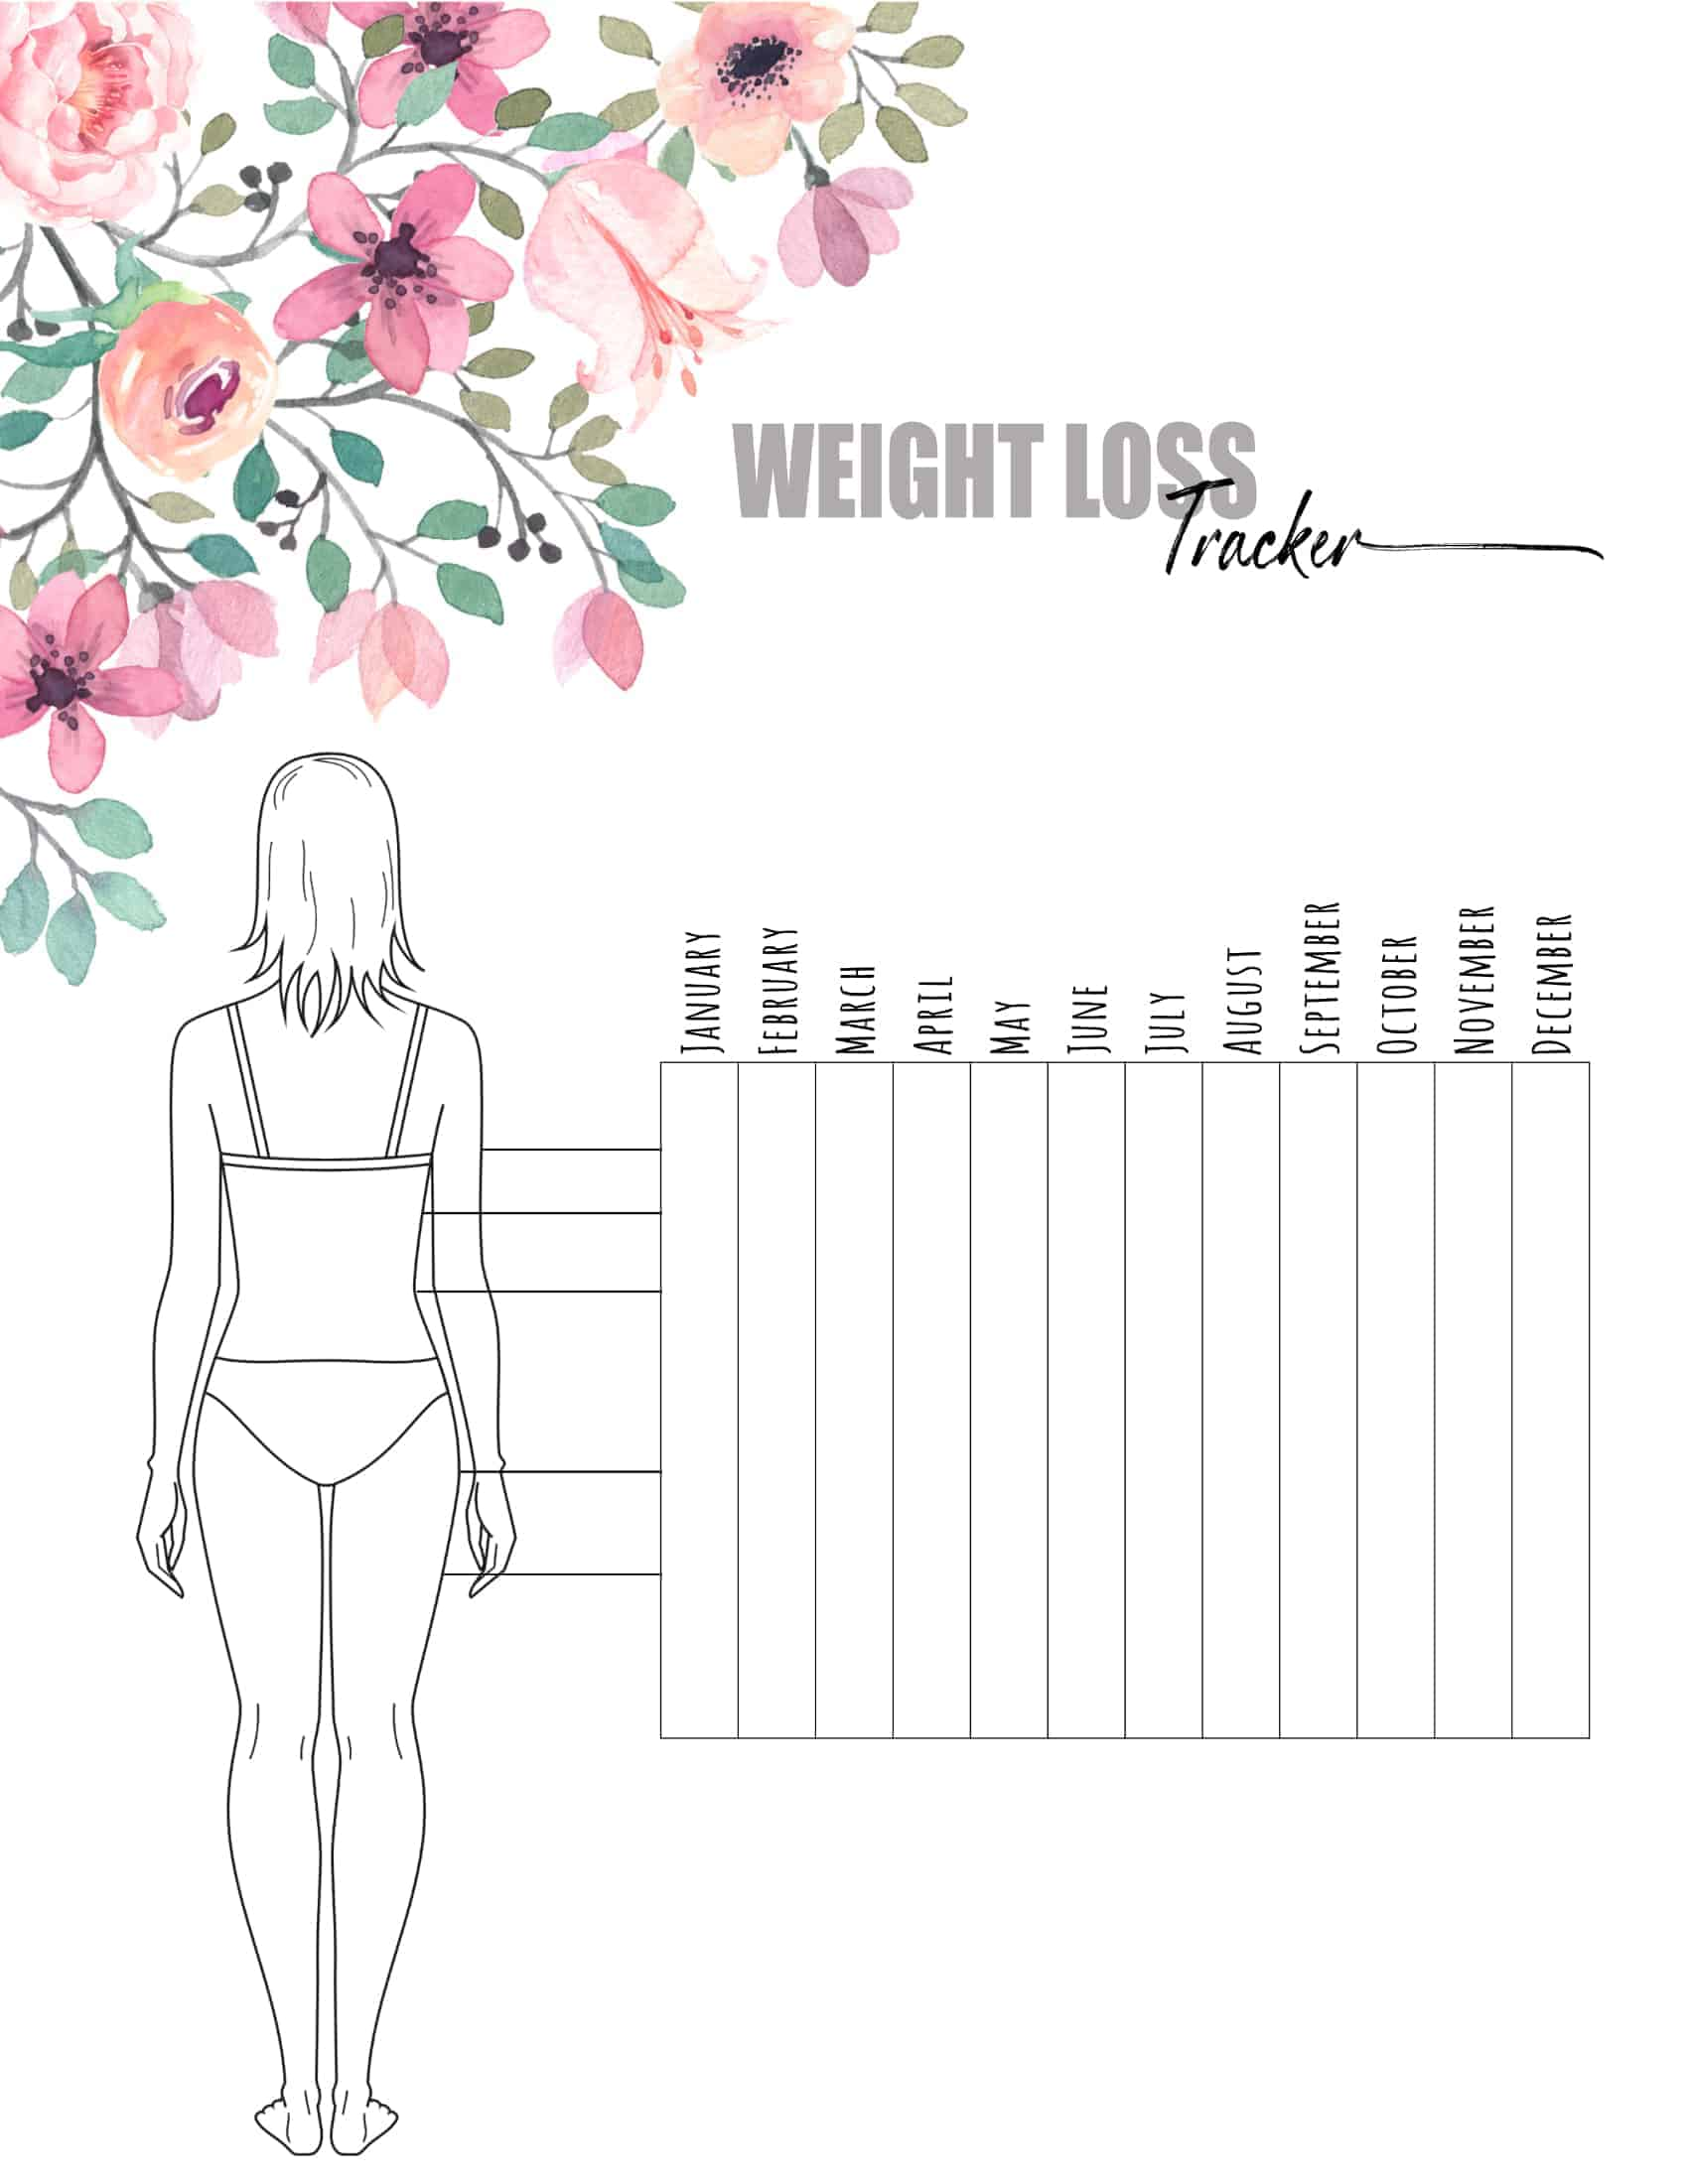 Free Weight Loss Tracker Printable Customize Before You Print